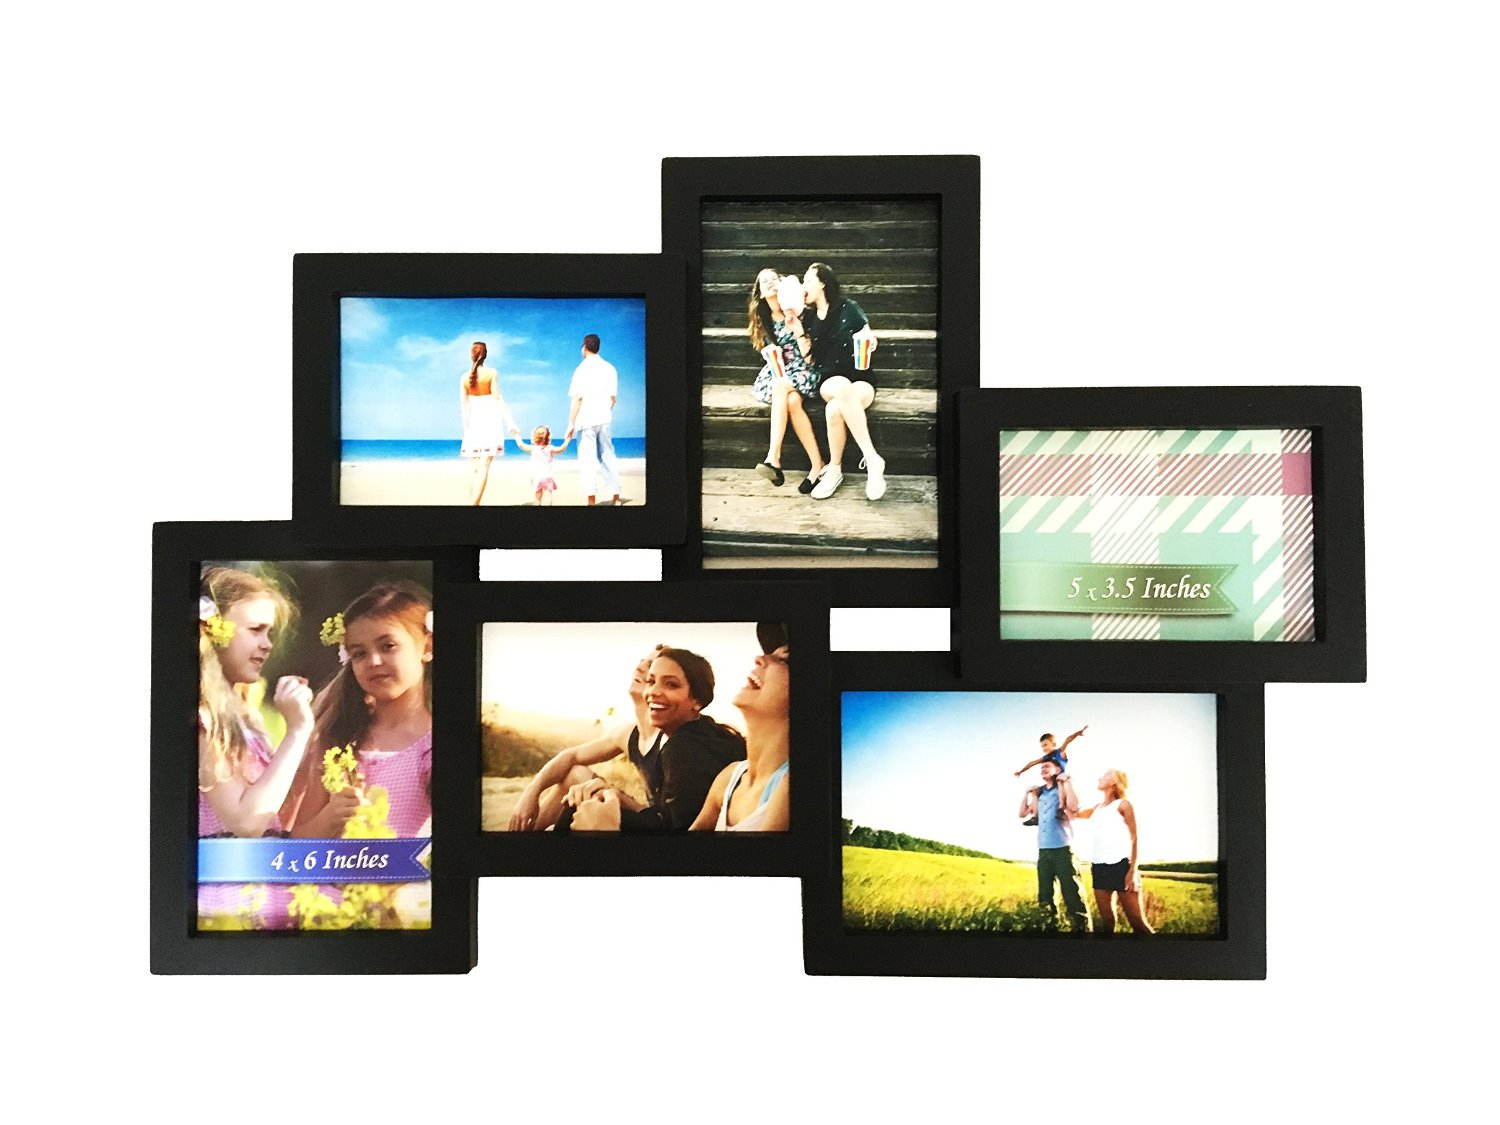 Buy BestBuy Frames Wall Hanging Collage 6 Opening (3 - 4 x 6-Inch ...